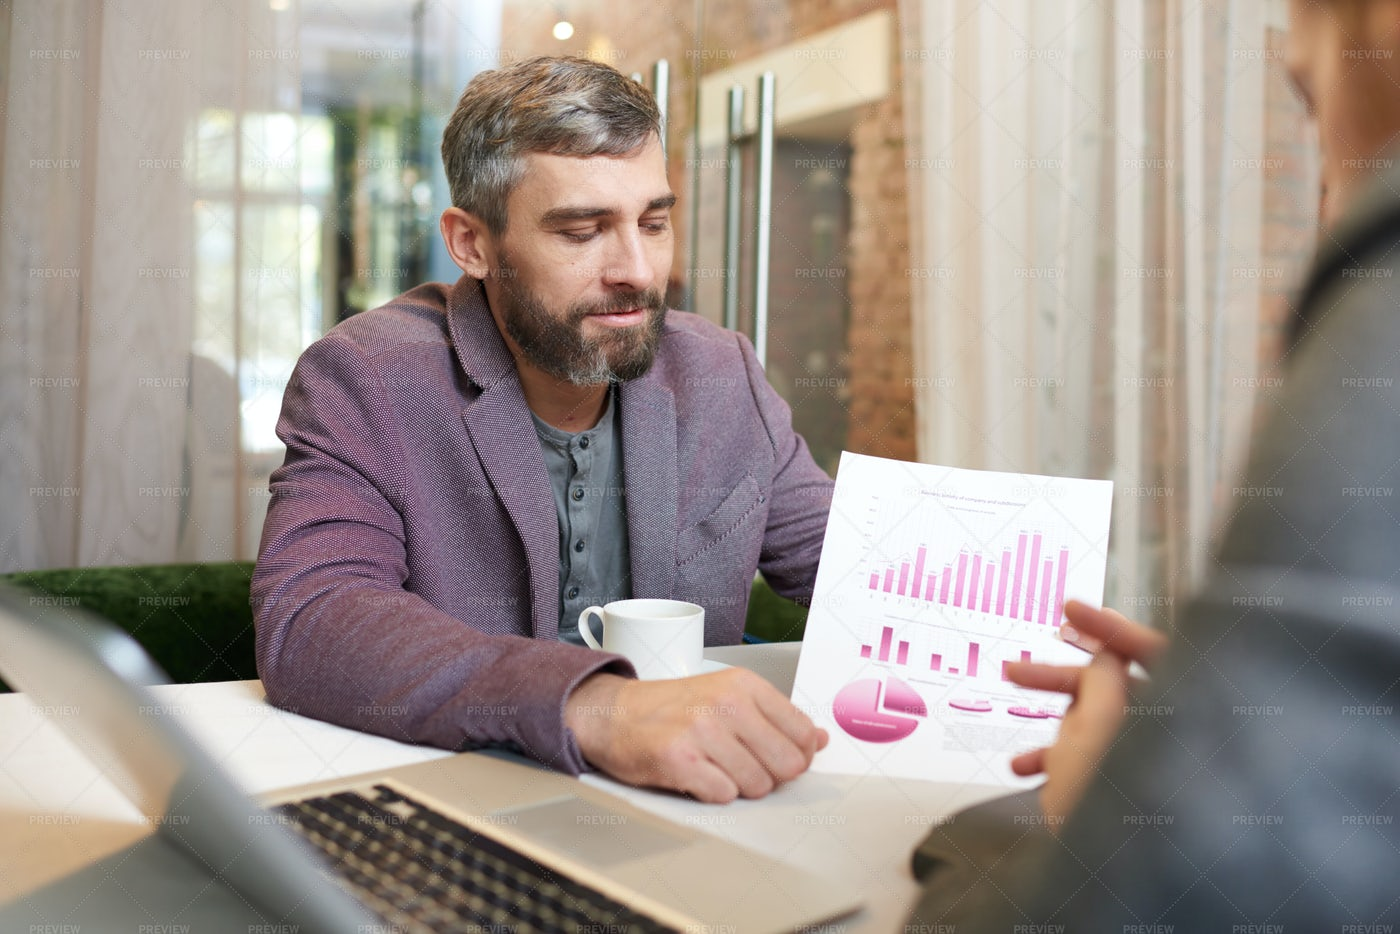 Analyzing Financial Figures With...: Stock Photos